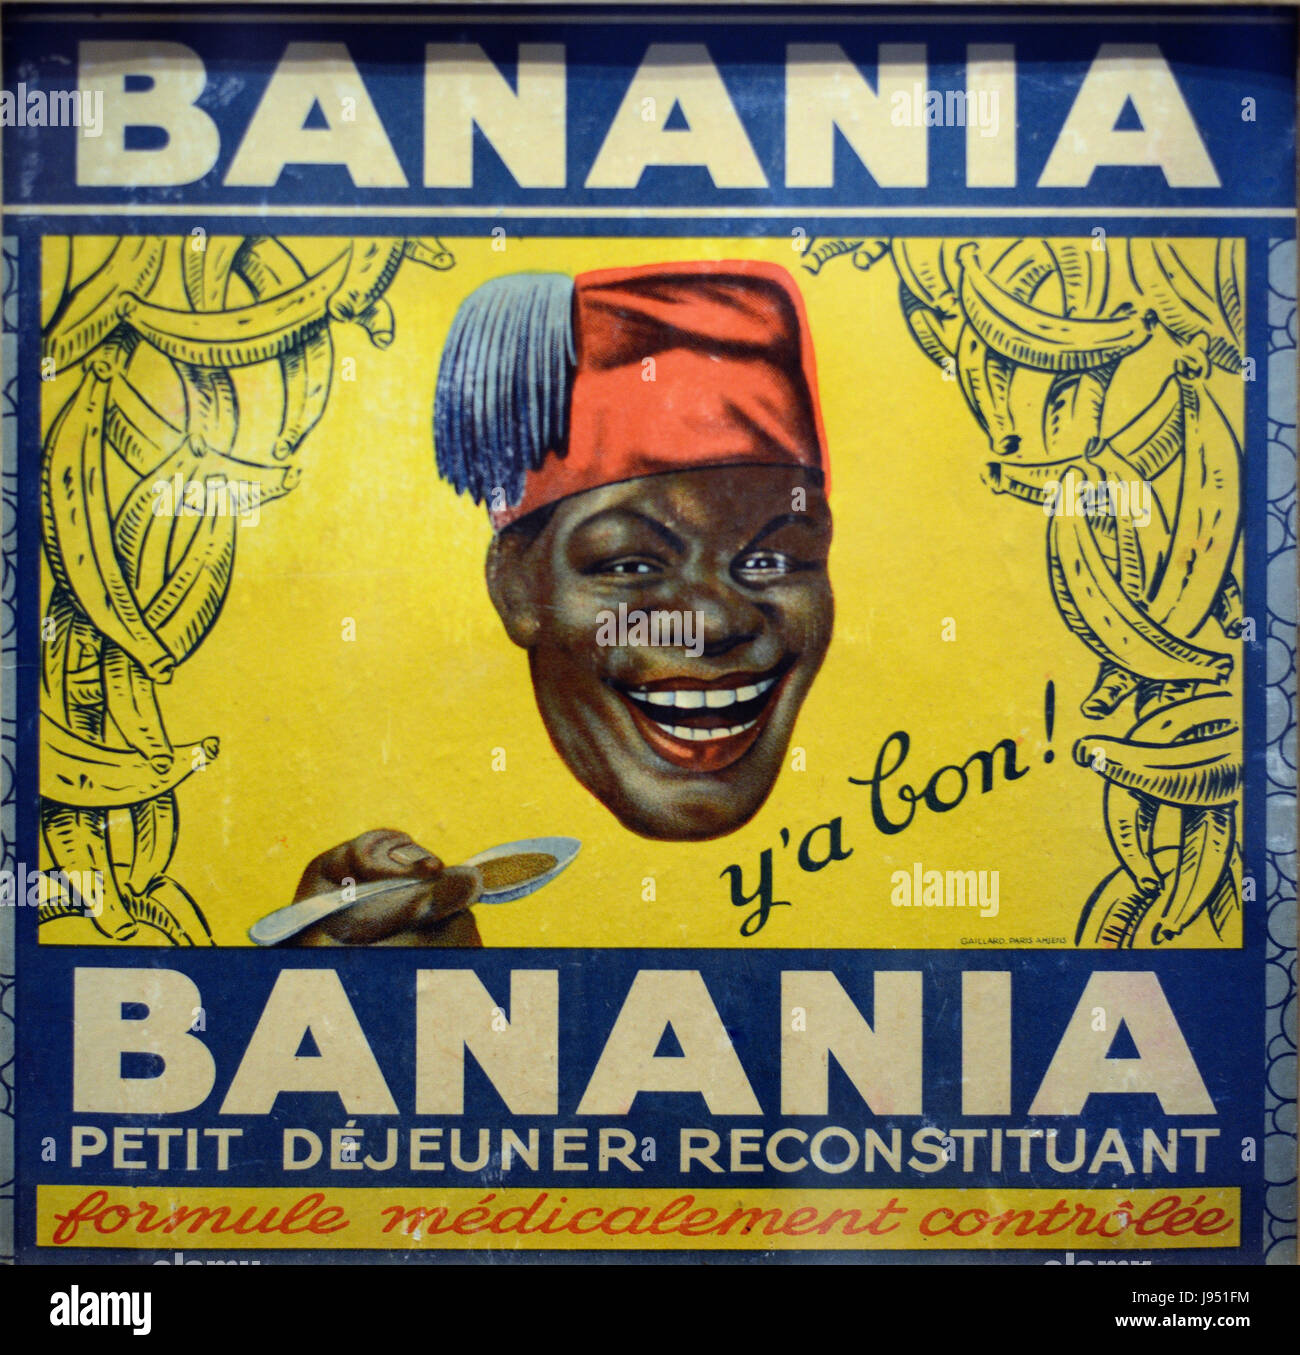 Vintage Advert for Banania Chocolate Drink with a Grinning Senegalese Tirailleur c1940 France - Stock Image